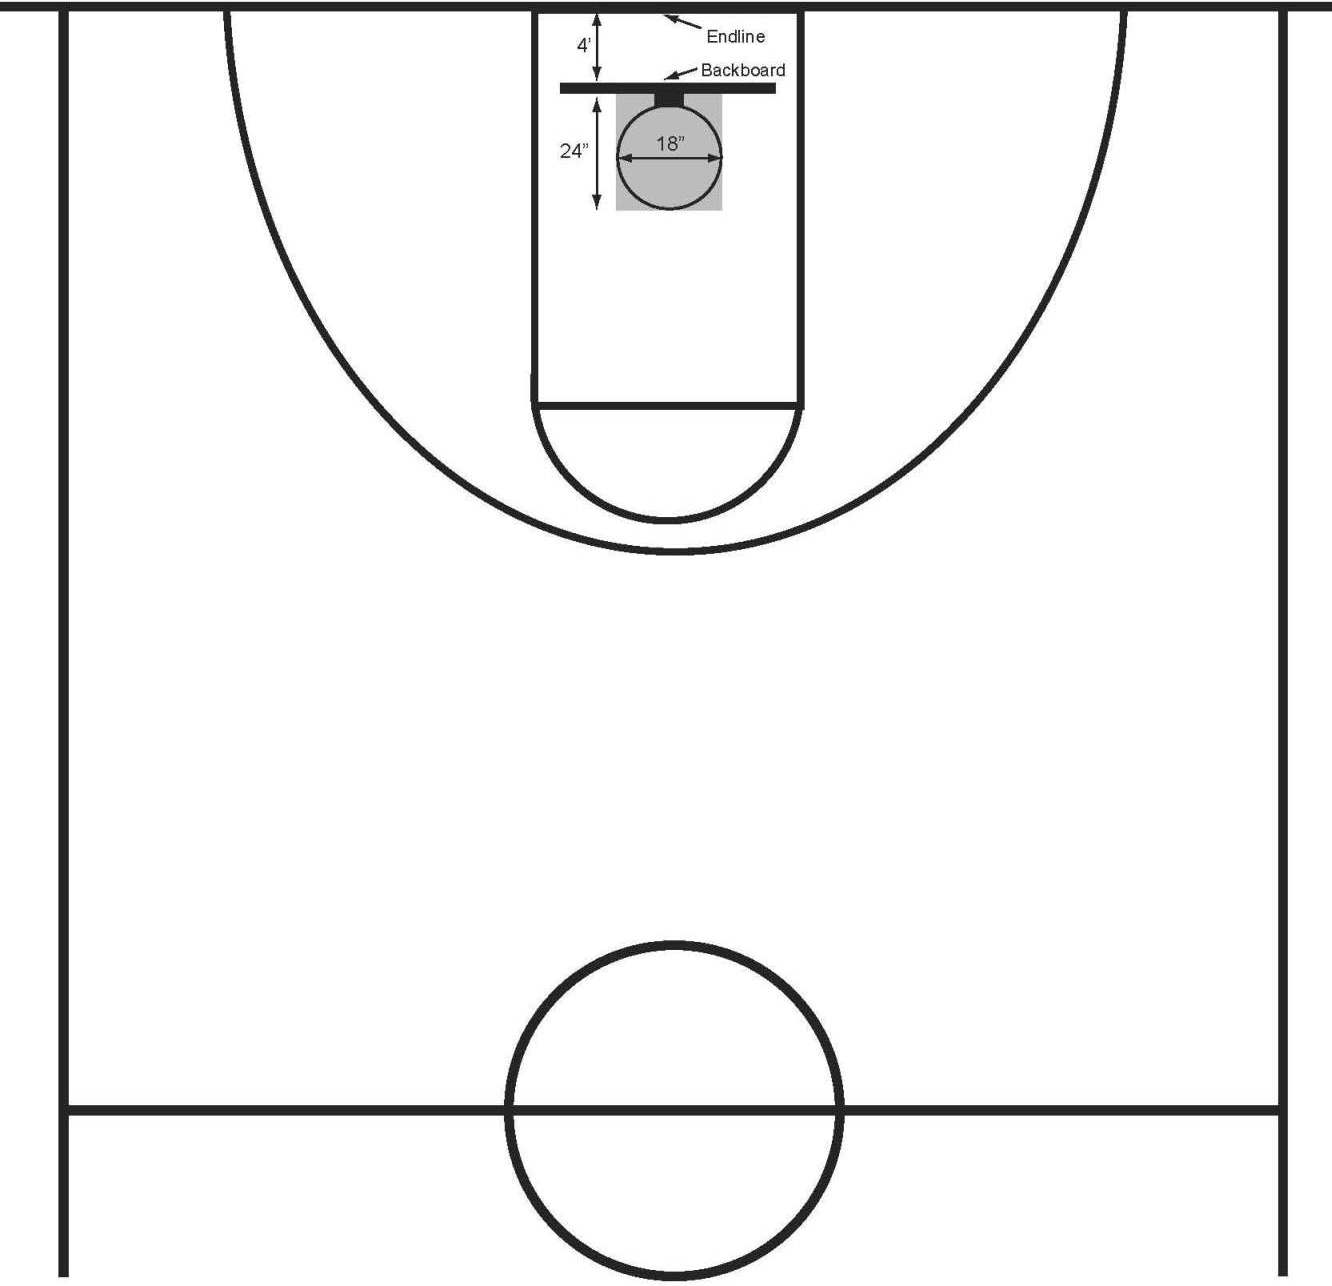 Printable Basketball Pictures - ClipArt Best - ClipArt Best